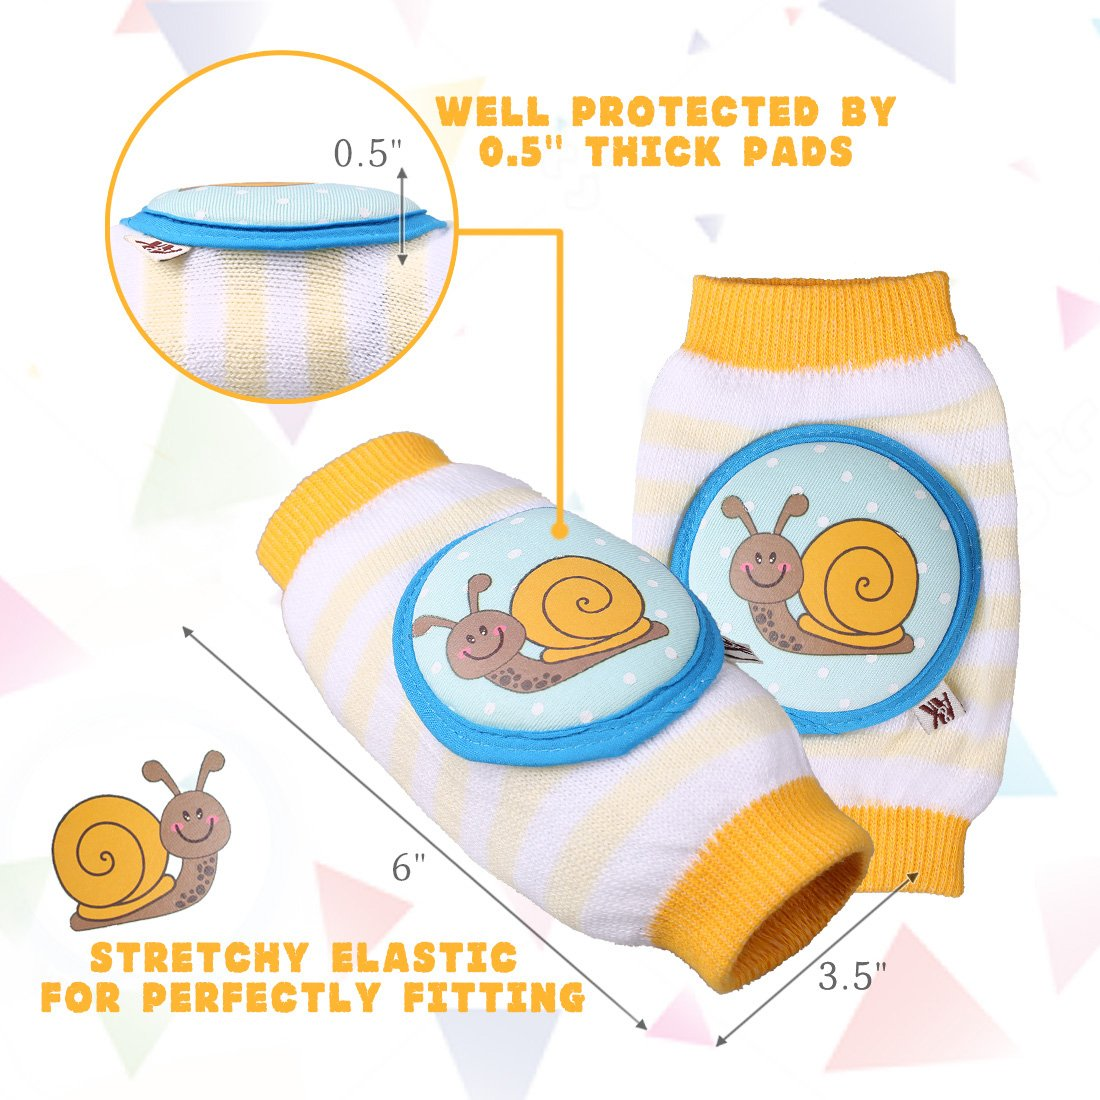 Ava & Kings Baby Knee Pads for Crawling - Babies Stuffs Gift Ideas for Infants - Protect Elbows and Legs w/Breathable Warmer Cotton and Anti-Slip Elastic - Unisex For Boys & Girls - Set of 3 by Ava & Kings (Image #4)